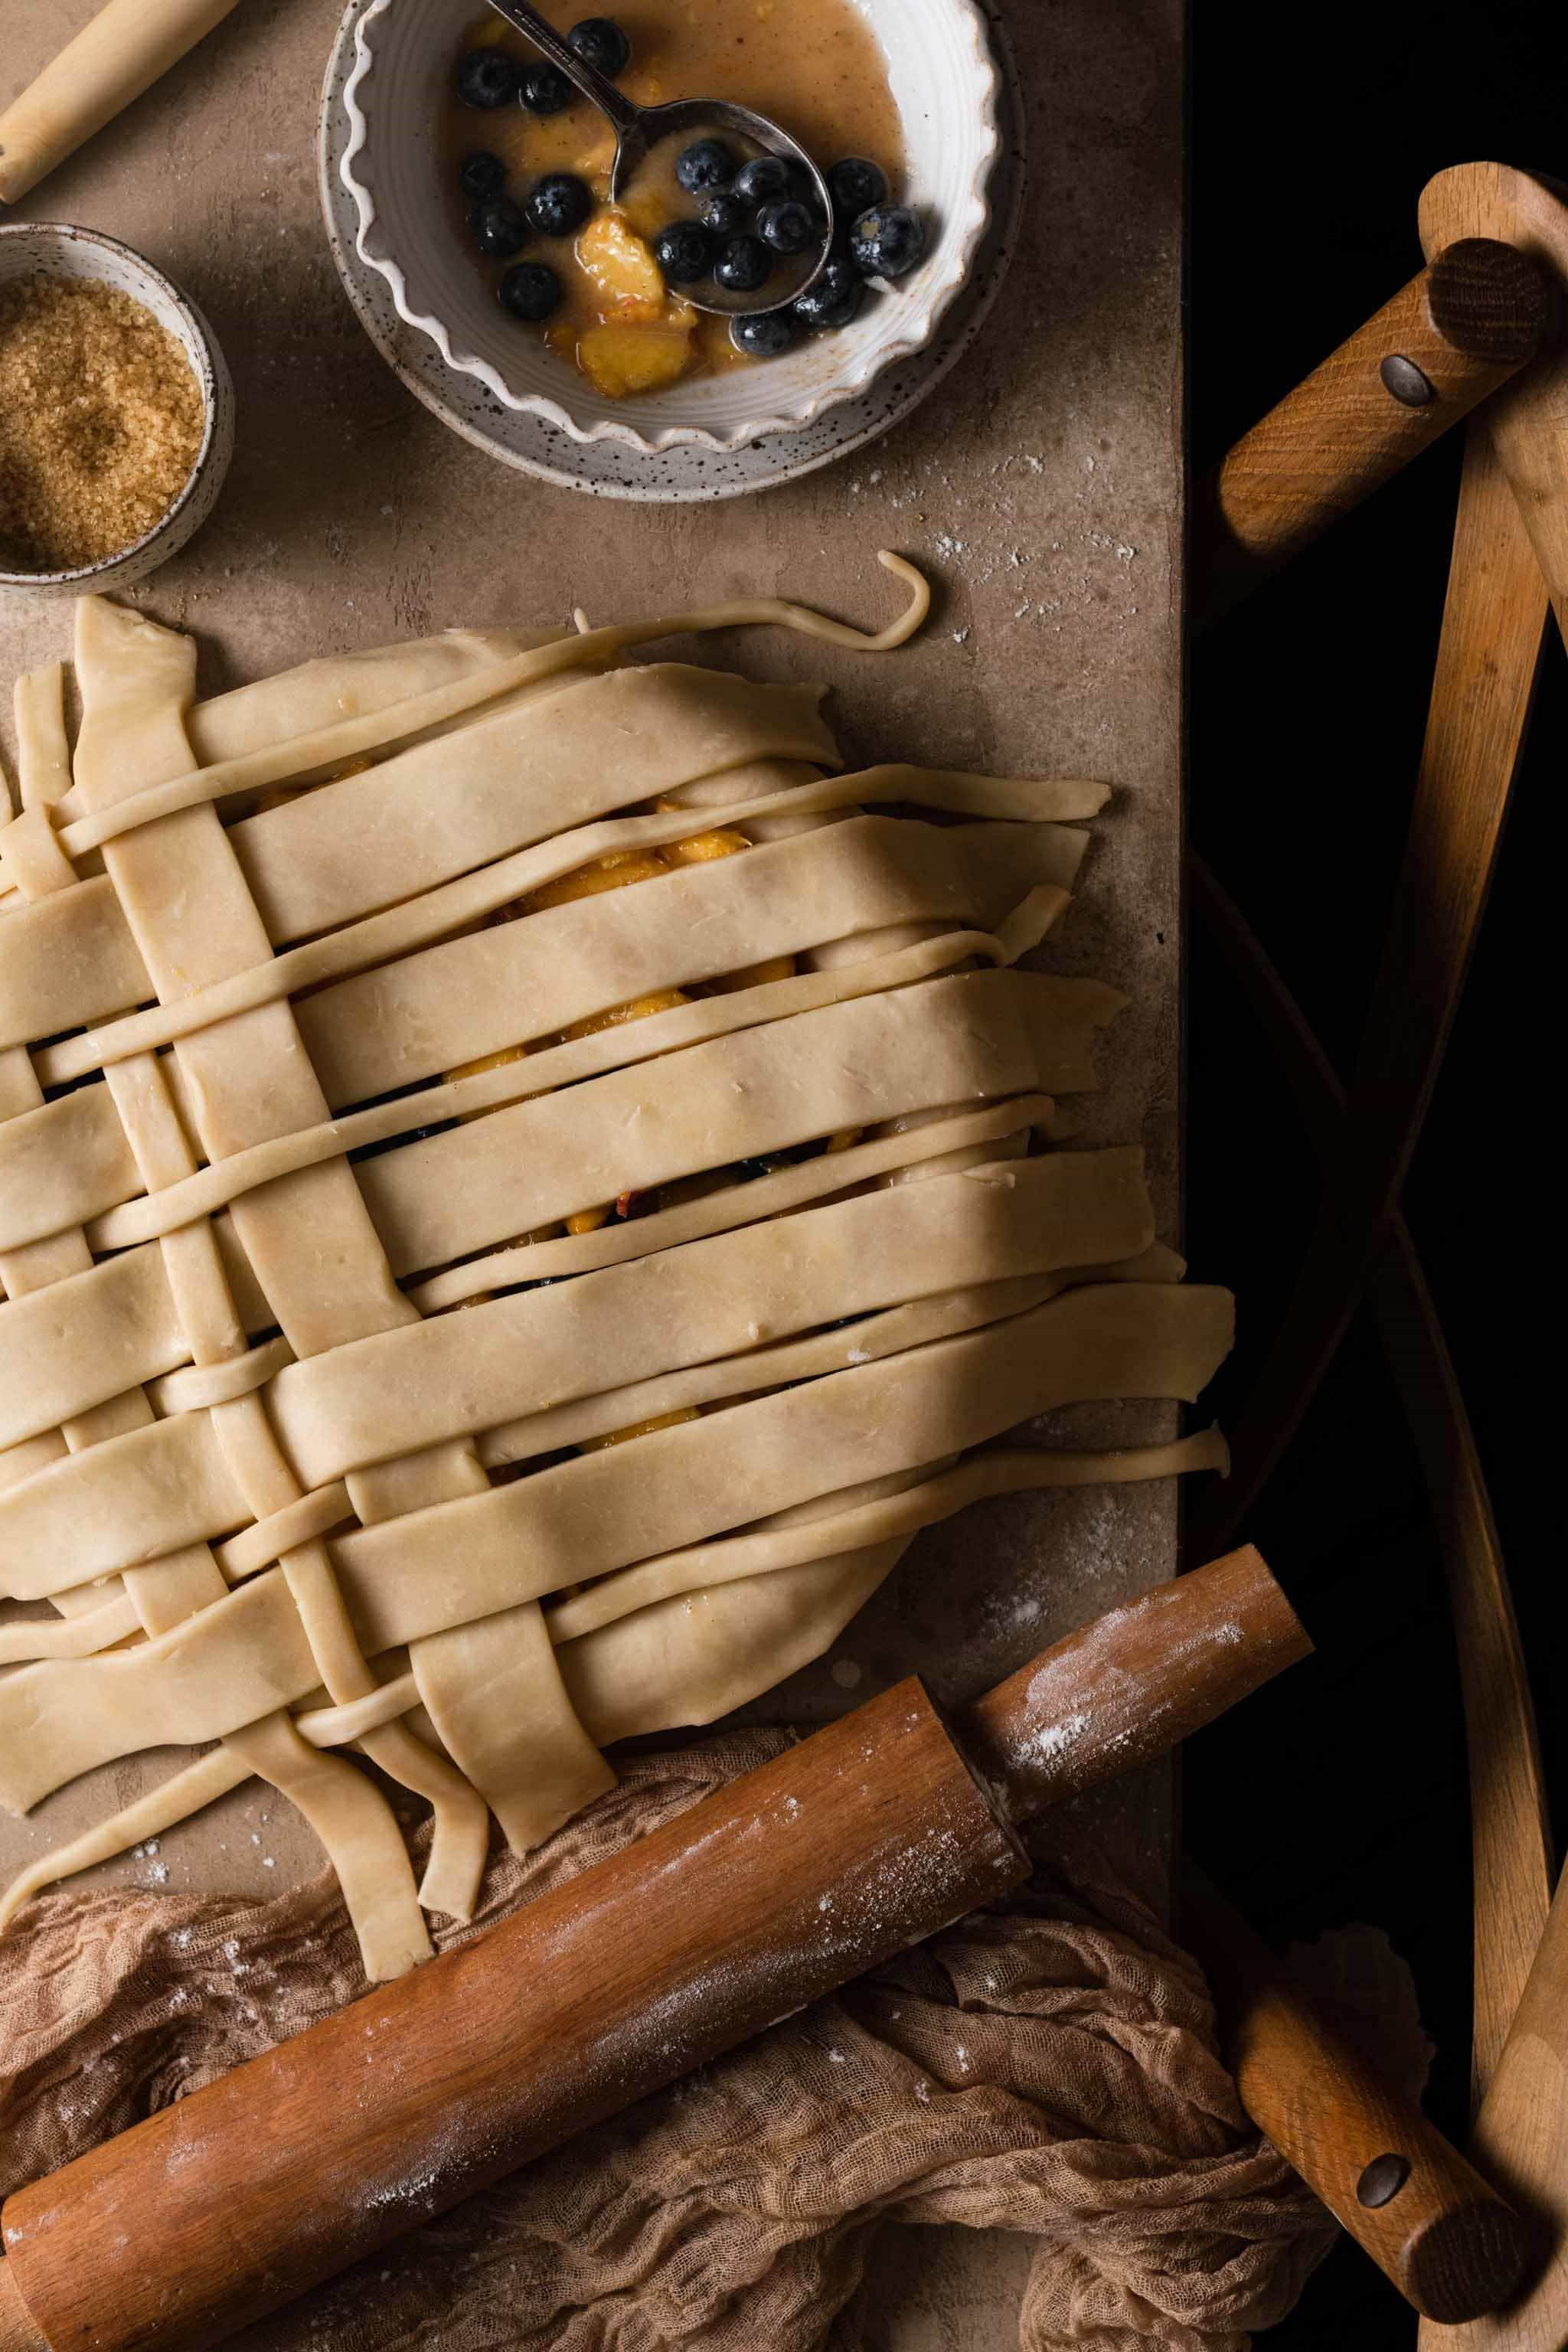 How to fold pie crust lattice